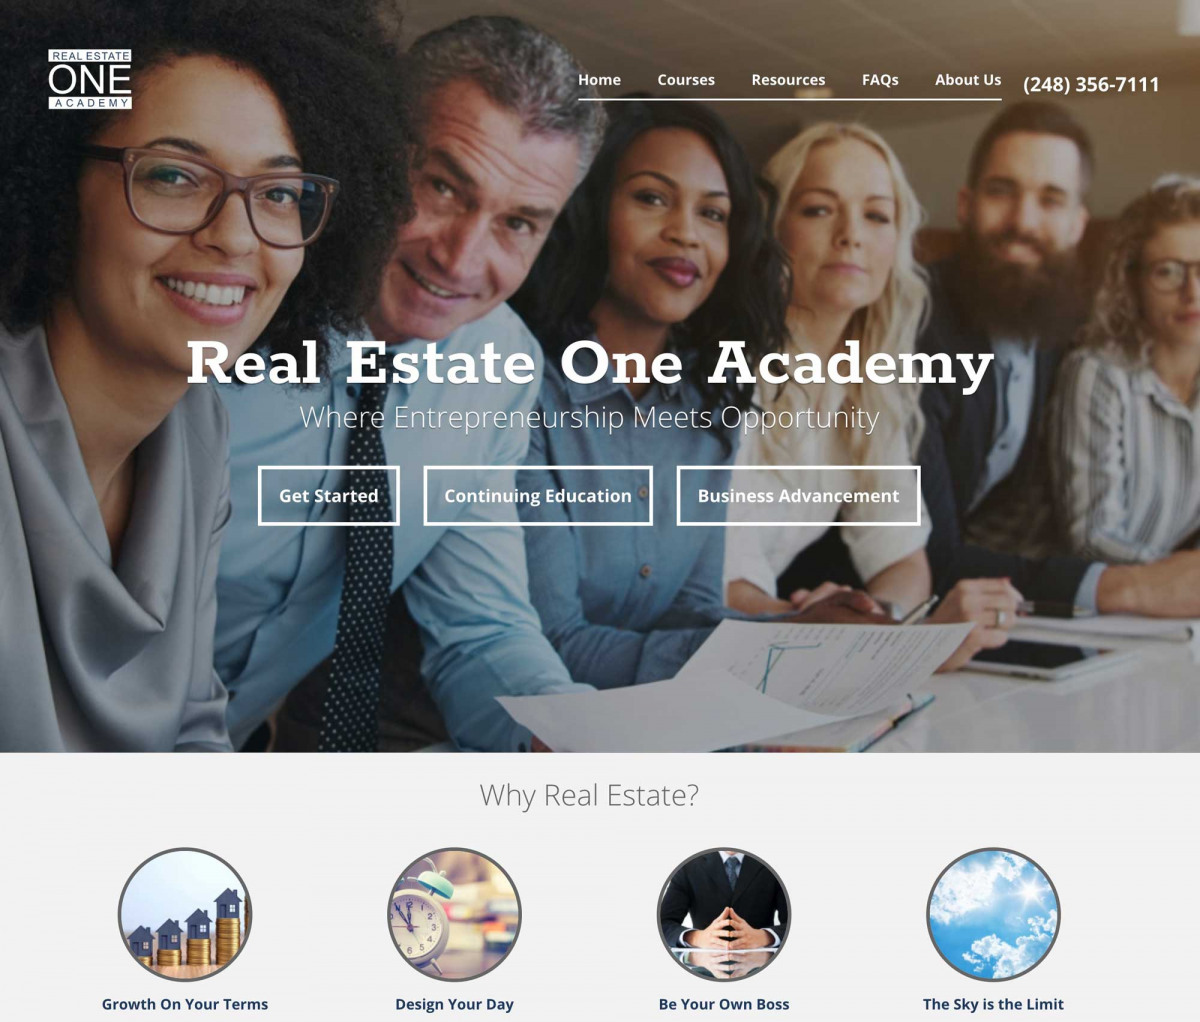 Image of website for Real Estate One Academy